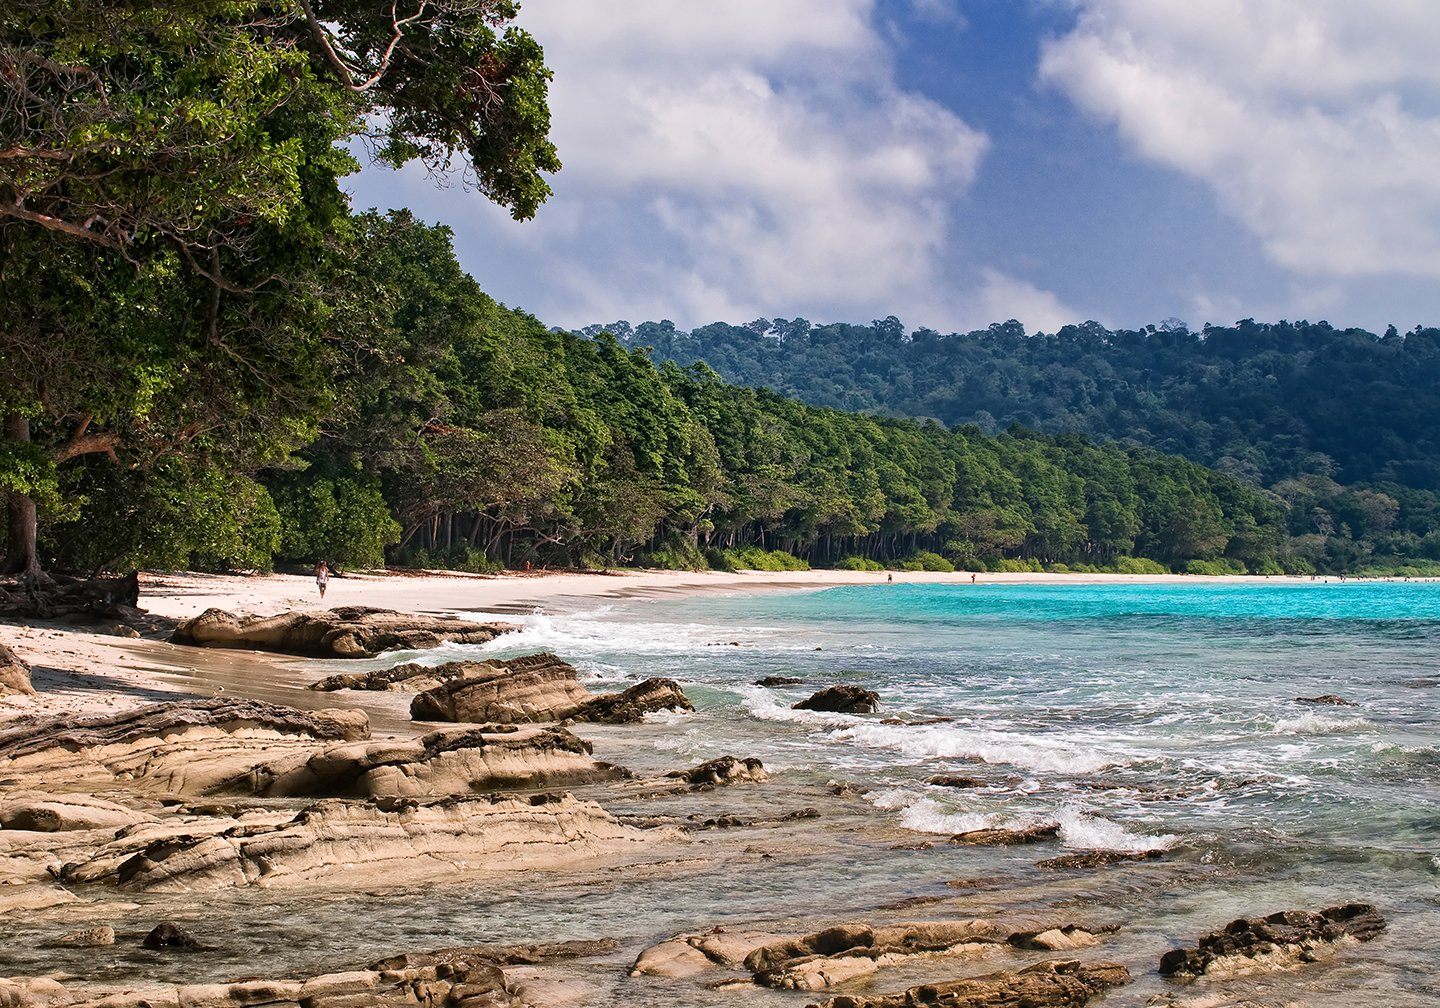 A beach on the Andaman Islands with dense jungle and turquoise sea.